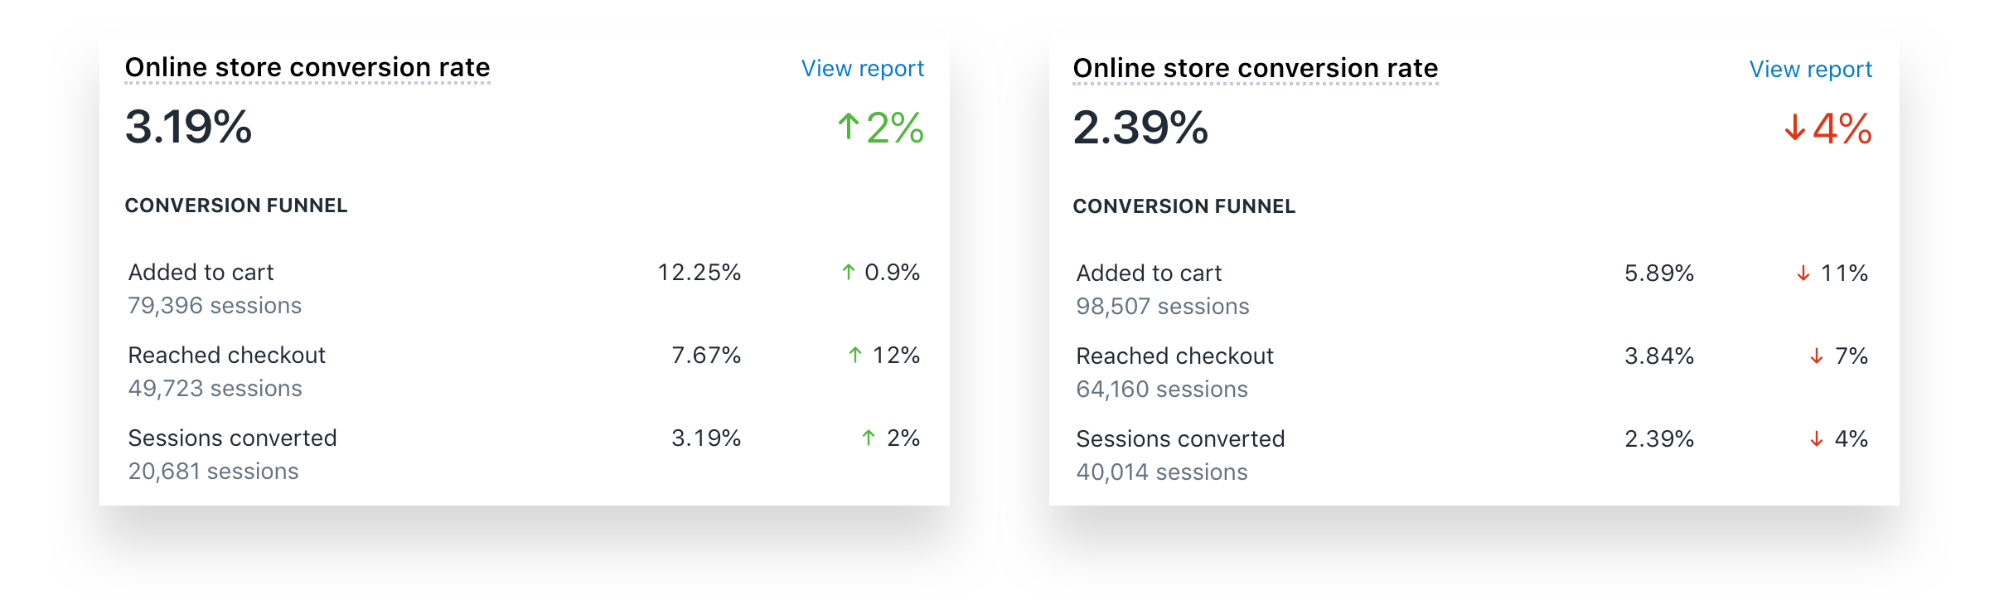 Online store conversion rate and conversion funnel reports